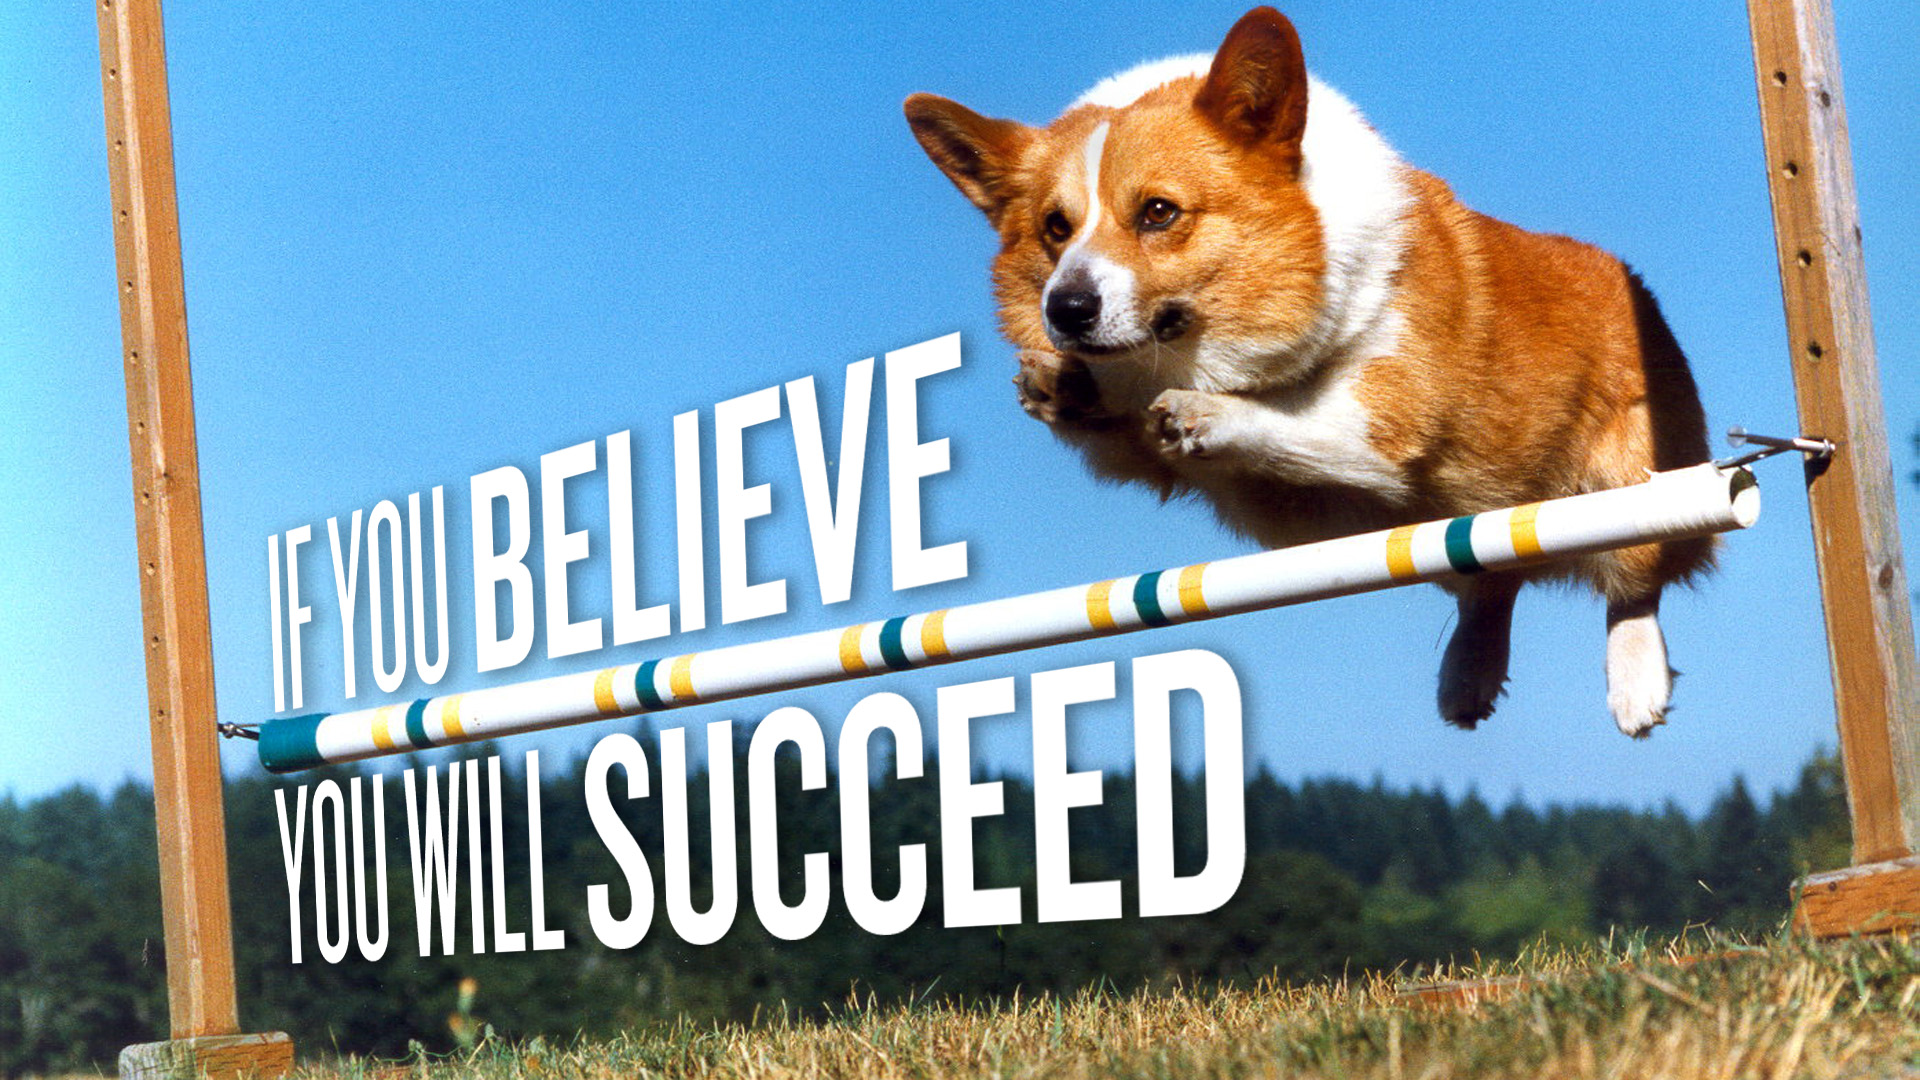 if-you-believe-you-will-succeed-awesome-graphic-share-on-facebook1.jpg